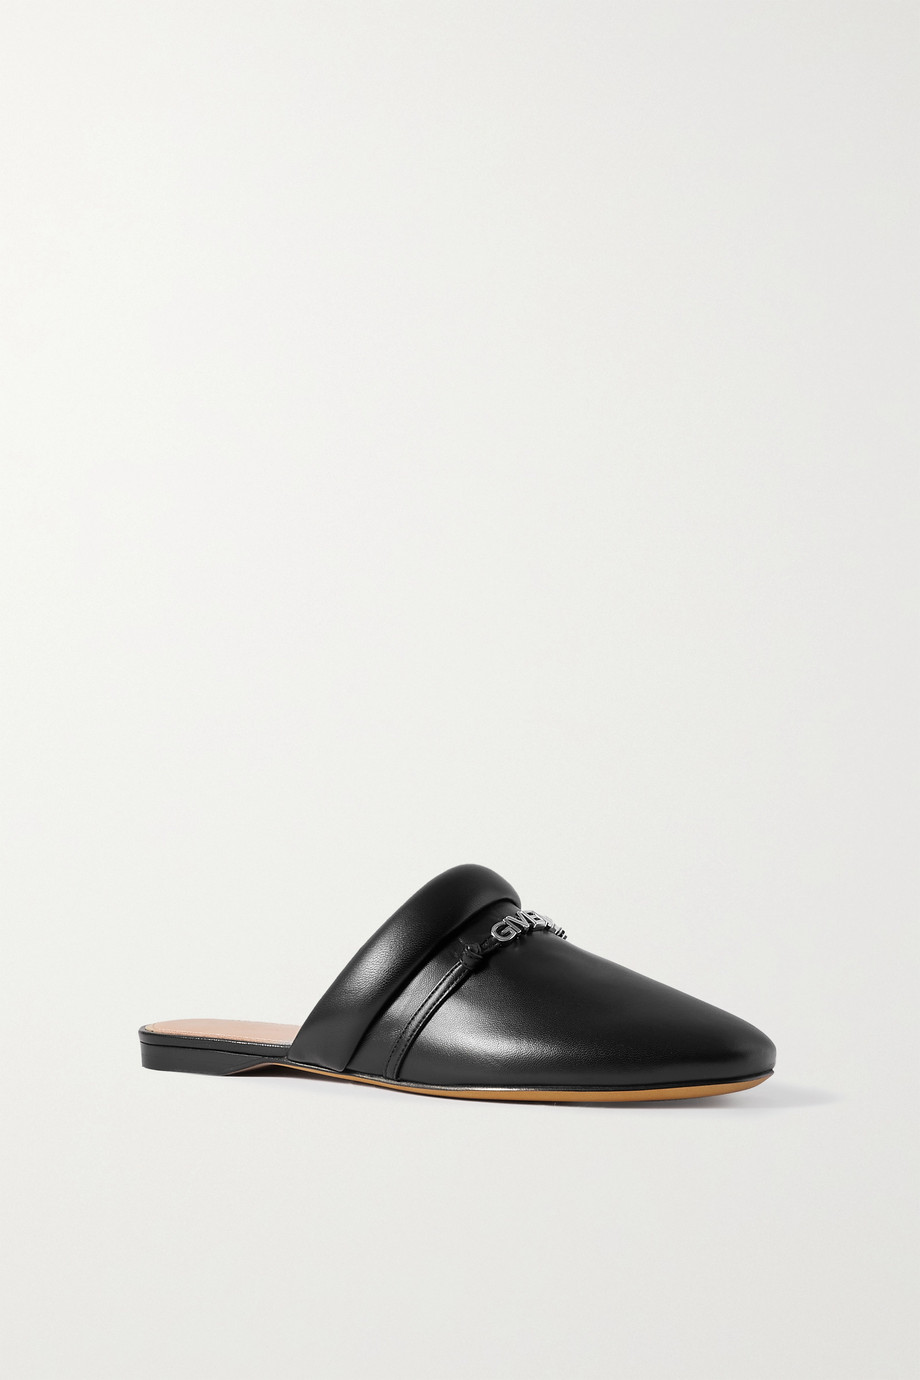 Givenchy Elba logo-embellished leather slippers